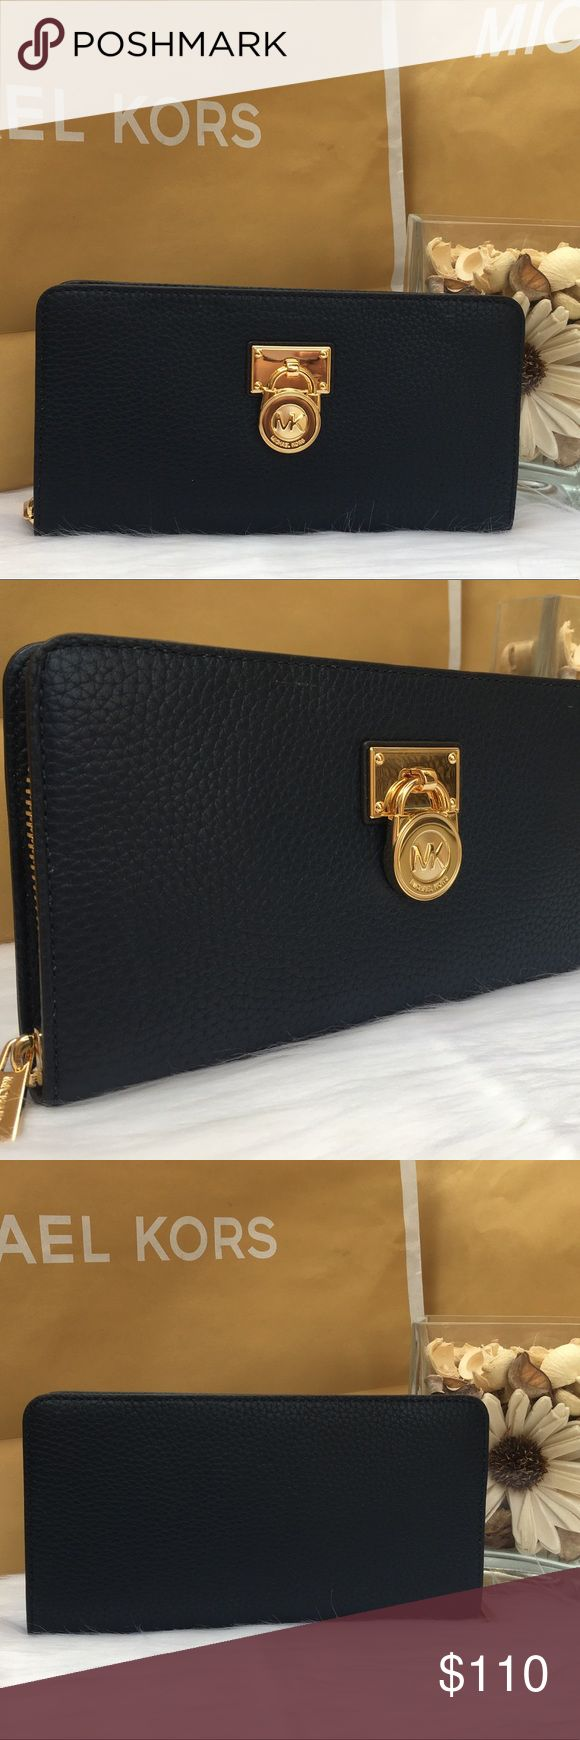 """NWT Michael Kors Hamilton Zip Around Large Wallet ❤️PRICE FIRM❤️ Brand New with Tag! 100% Authentic  MK Michael Kors Hamilton Traveler Wallet Large Zip Around Navy Blue Luggage Wallet Made of logo MK PVC with leather trim and LOCK detail on front Style:35F6GHXZ3L •Retail price $148  •Zip around for closure •Inside features 12 credit card slots. •3 full length bill compartments •Full leather & Signature fabric lining •Gold hardware Dimensions :8.10""""(L) x 4.35""""(H) x 1""""(D)  Check out my closet…"""